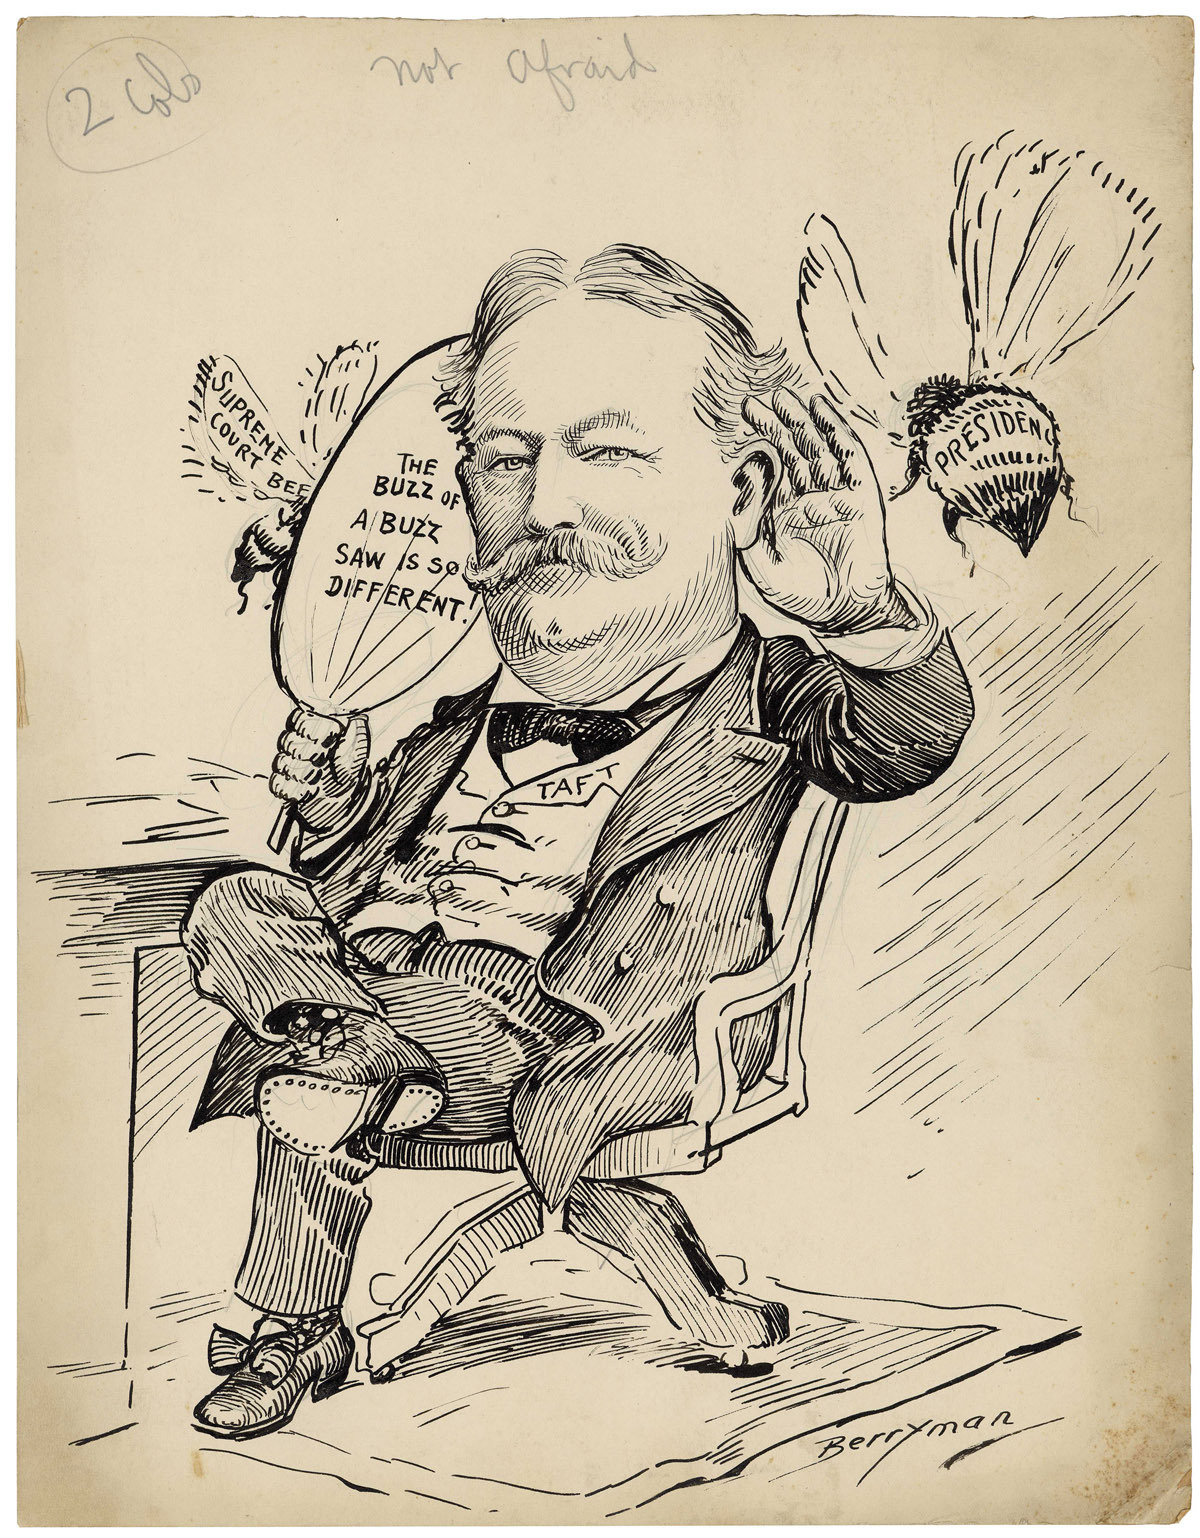 "This political cartoon by Clifford K. Berryman depicts William Howard Taft being enticed to run for the Presidency. While serving as Secretary of War, Taft had told President Theodore Roosevelt that his highest ambition was to serve as Chief Justice of the U.S. Supreme Court, but Roosevelt wanted him to run in the 1908 election as his successor. With Roosevelt's encouragement, Taft began to consider running. In this cartoon Taft blocks the buzz of a potential Supreme Court nomination to better hear the enticing buzz of the Presidential bee. Berryman speculates that Taft may be succumbing to Roosevelt's wishes and is ""not afraid"" of running for President. Not Afraid by Clifford K. Berryman, 8/9/1905, U.S. Senate Collection (ARC 1693338)"